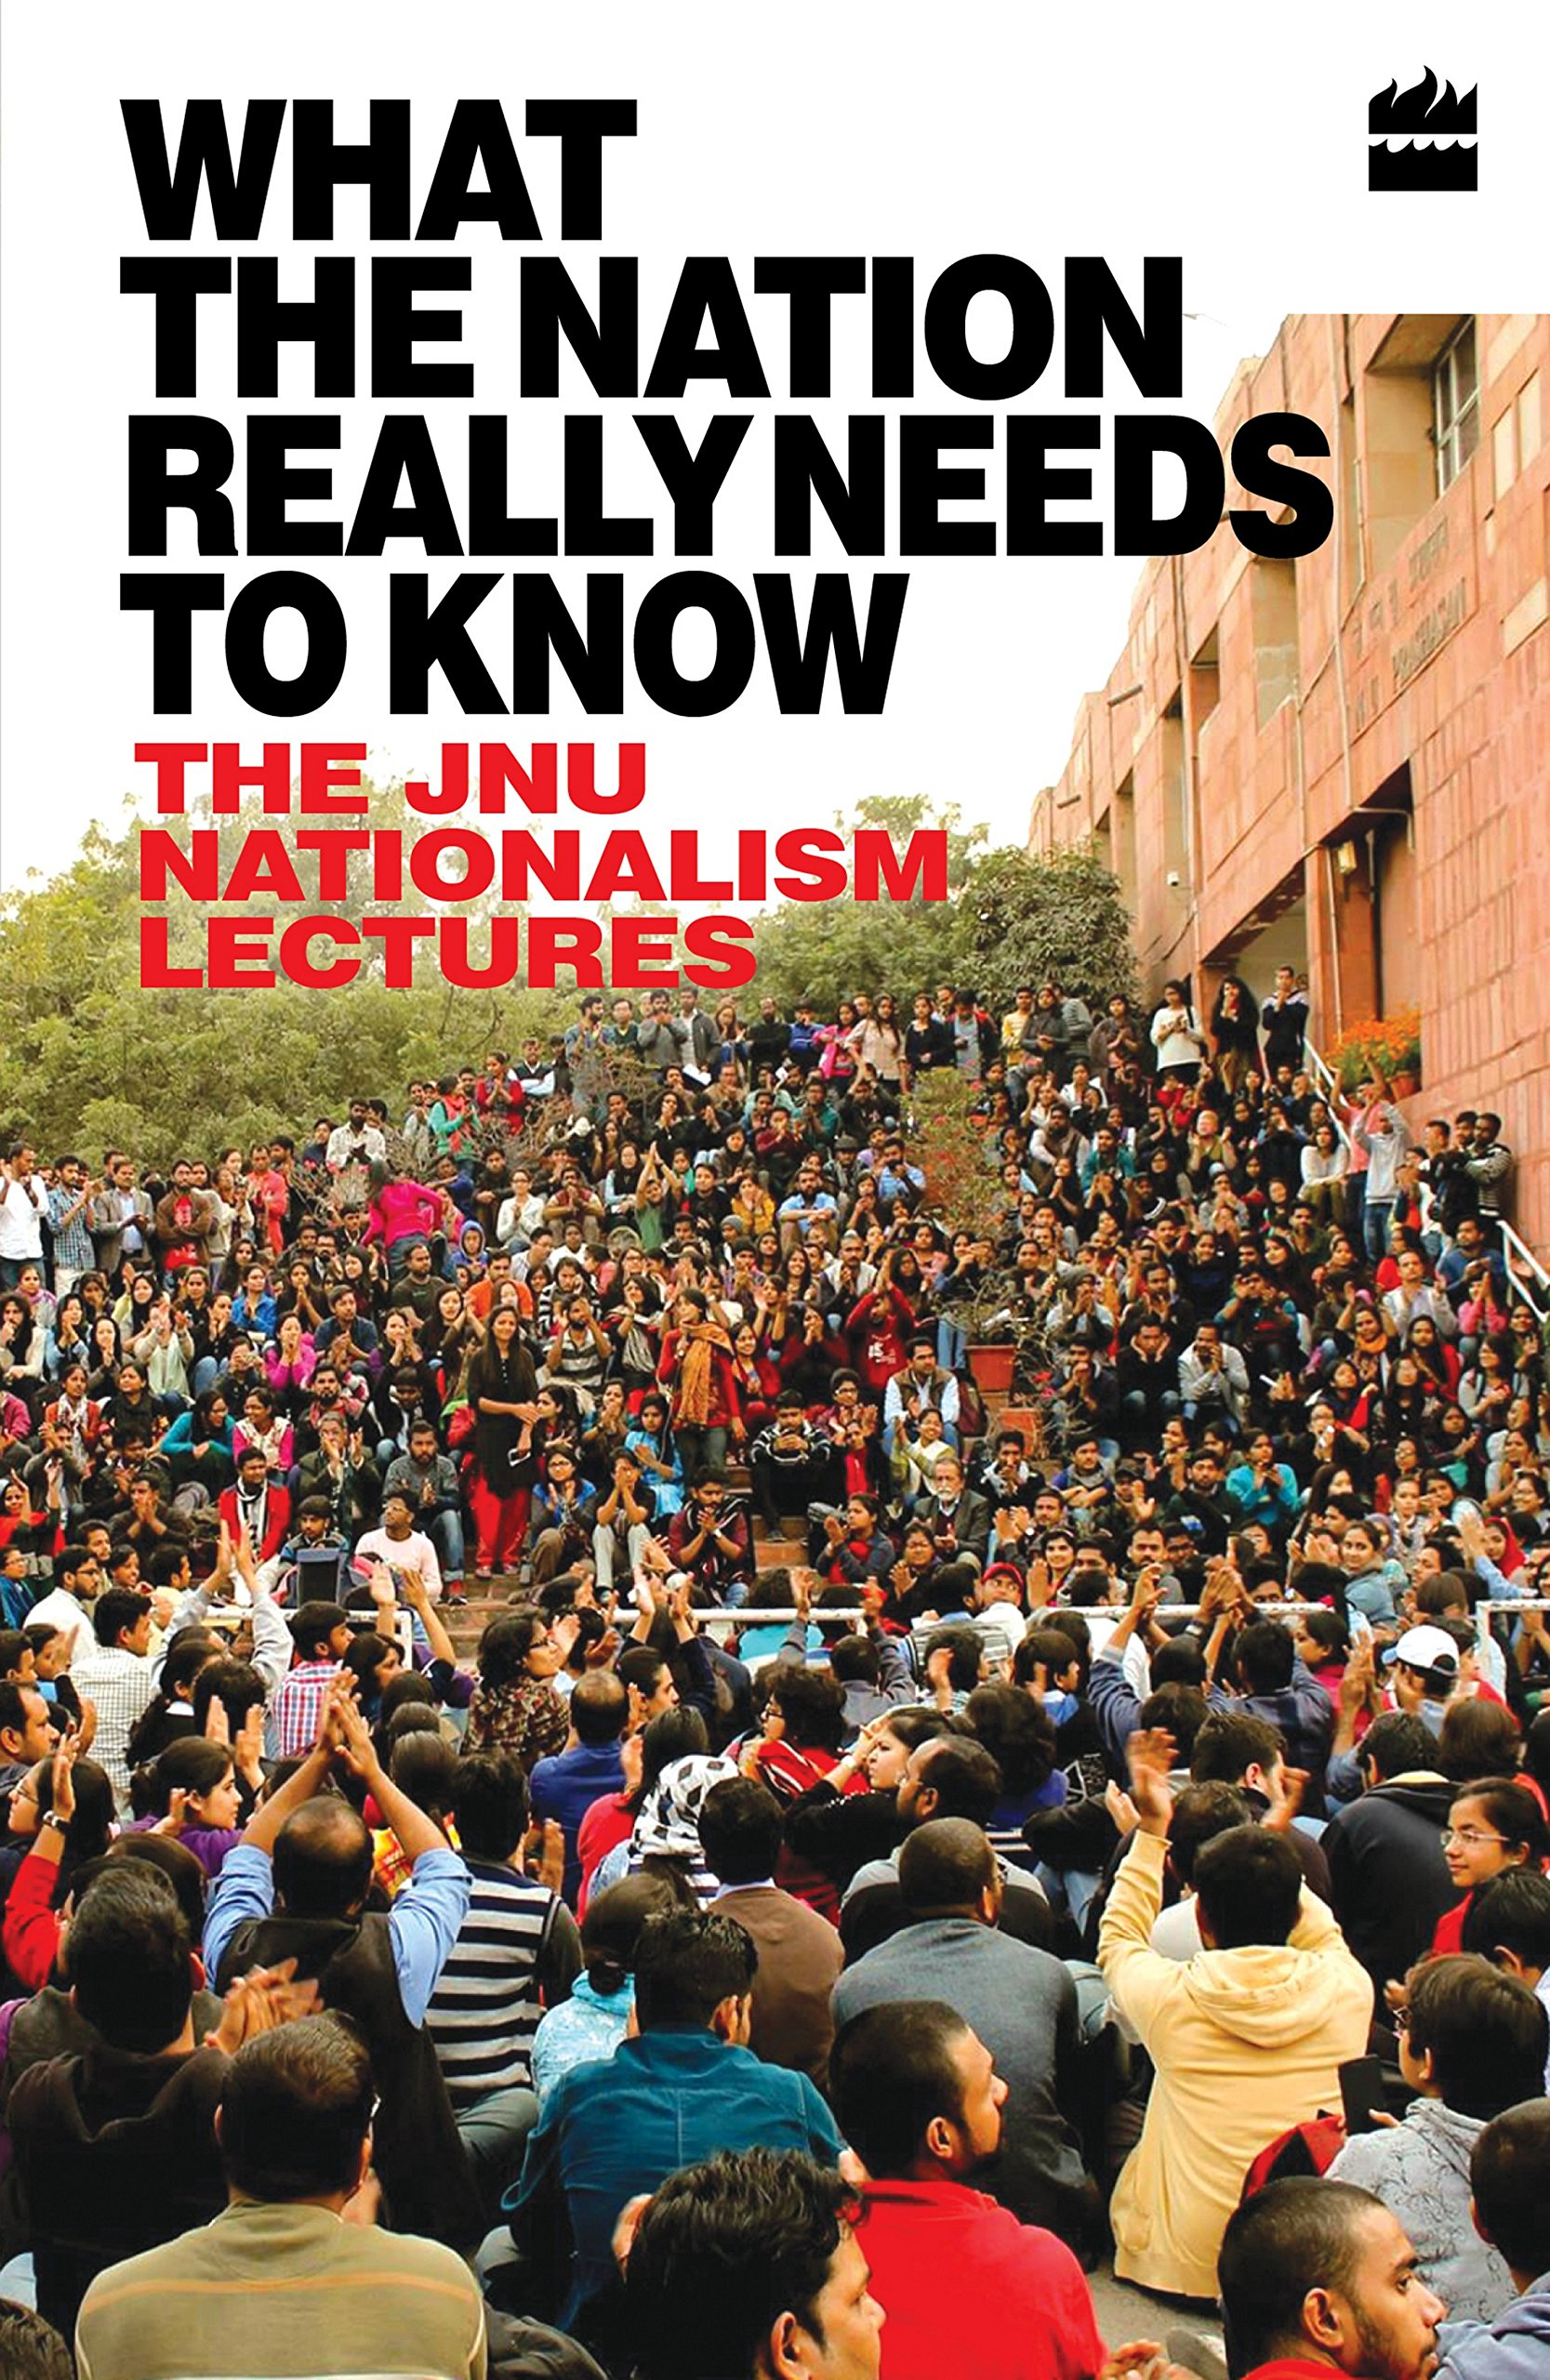 Buy What the Nation Really Needs to Know: The JNU Nationalism Lectures Book Online at Low Prices in India | What the Nation Really Needs to Know: The JNU ...